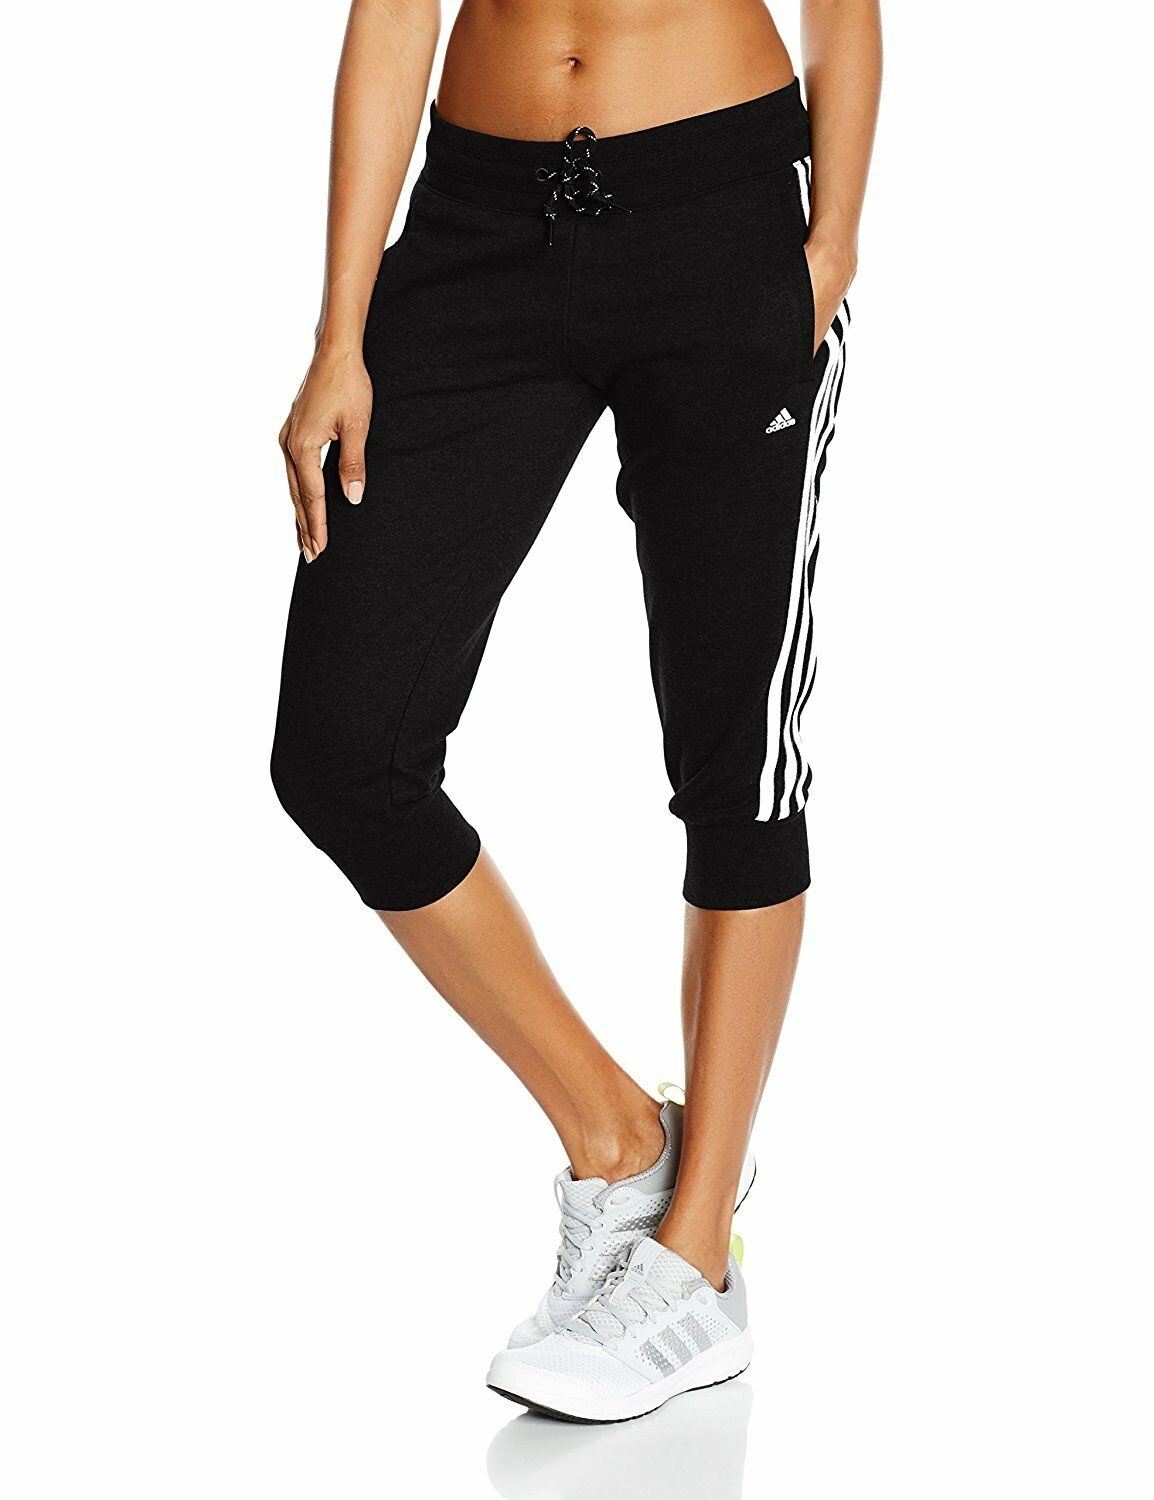 adidas damen 3 4 trainingshose 3 streifen schwarz gr xs xl eur 19 99 picclick de. Black Bedroom Furniture Sets. Home Design Ideas